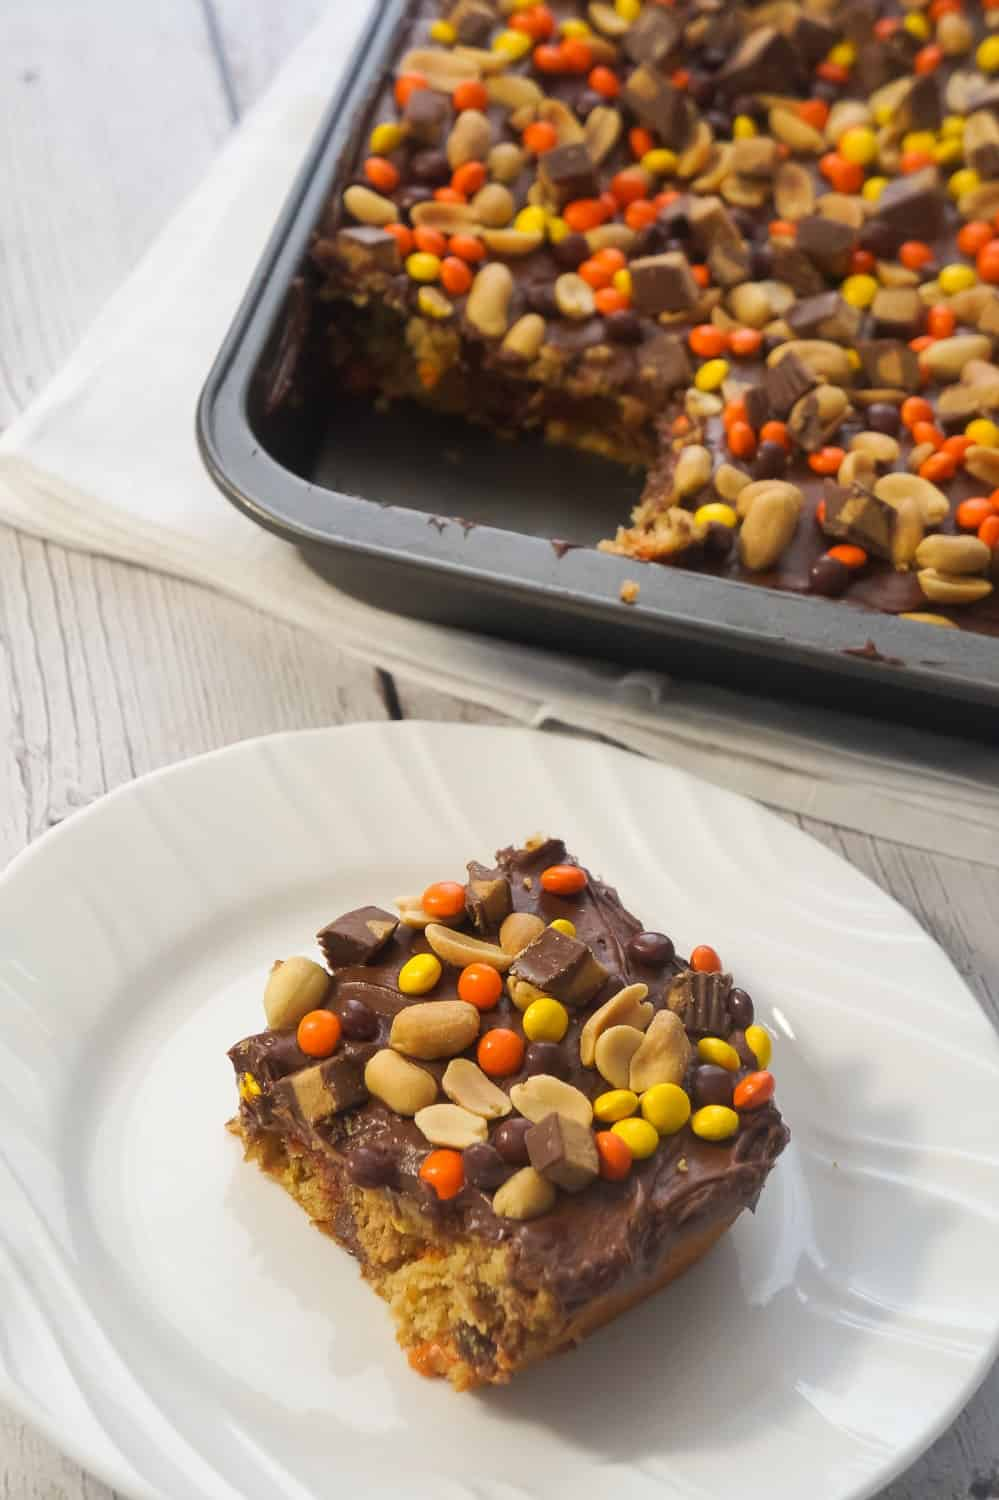 Ultimate Peanut Butter Banana Sheet cake is an easy chocolate peanut butter dessert recipe using boxed cake mix. This delicious cake is topped with chocolate frosting and loaded with peanut butter cups, Reese's Pieces and peanuts.